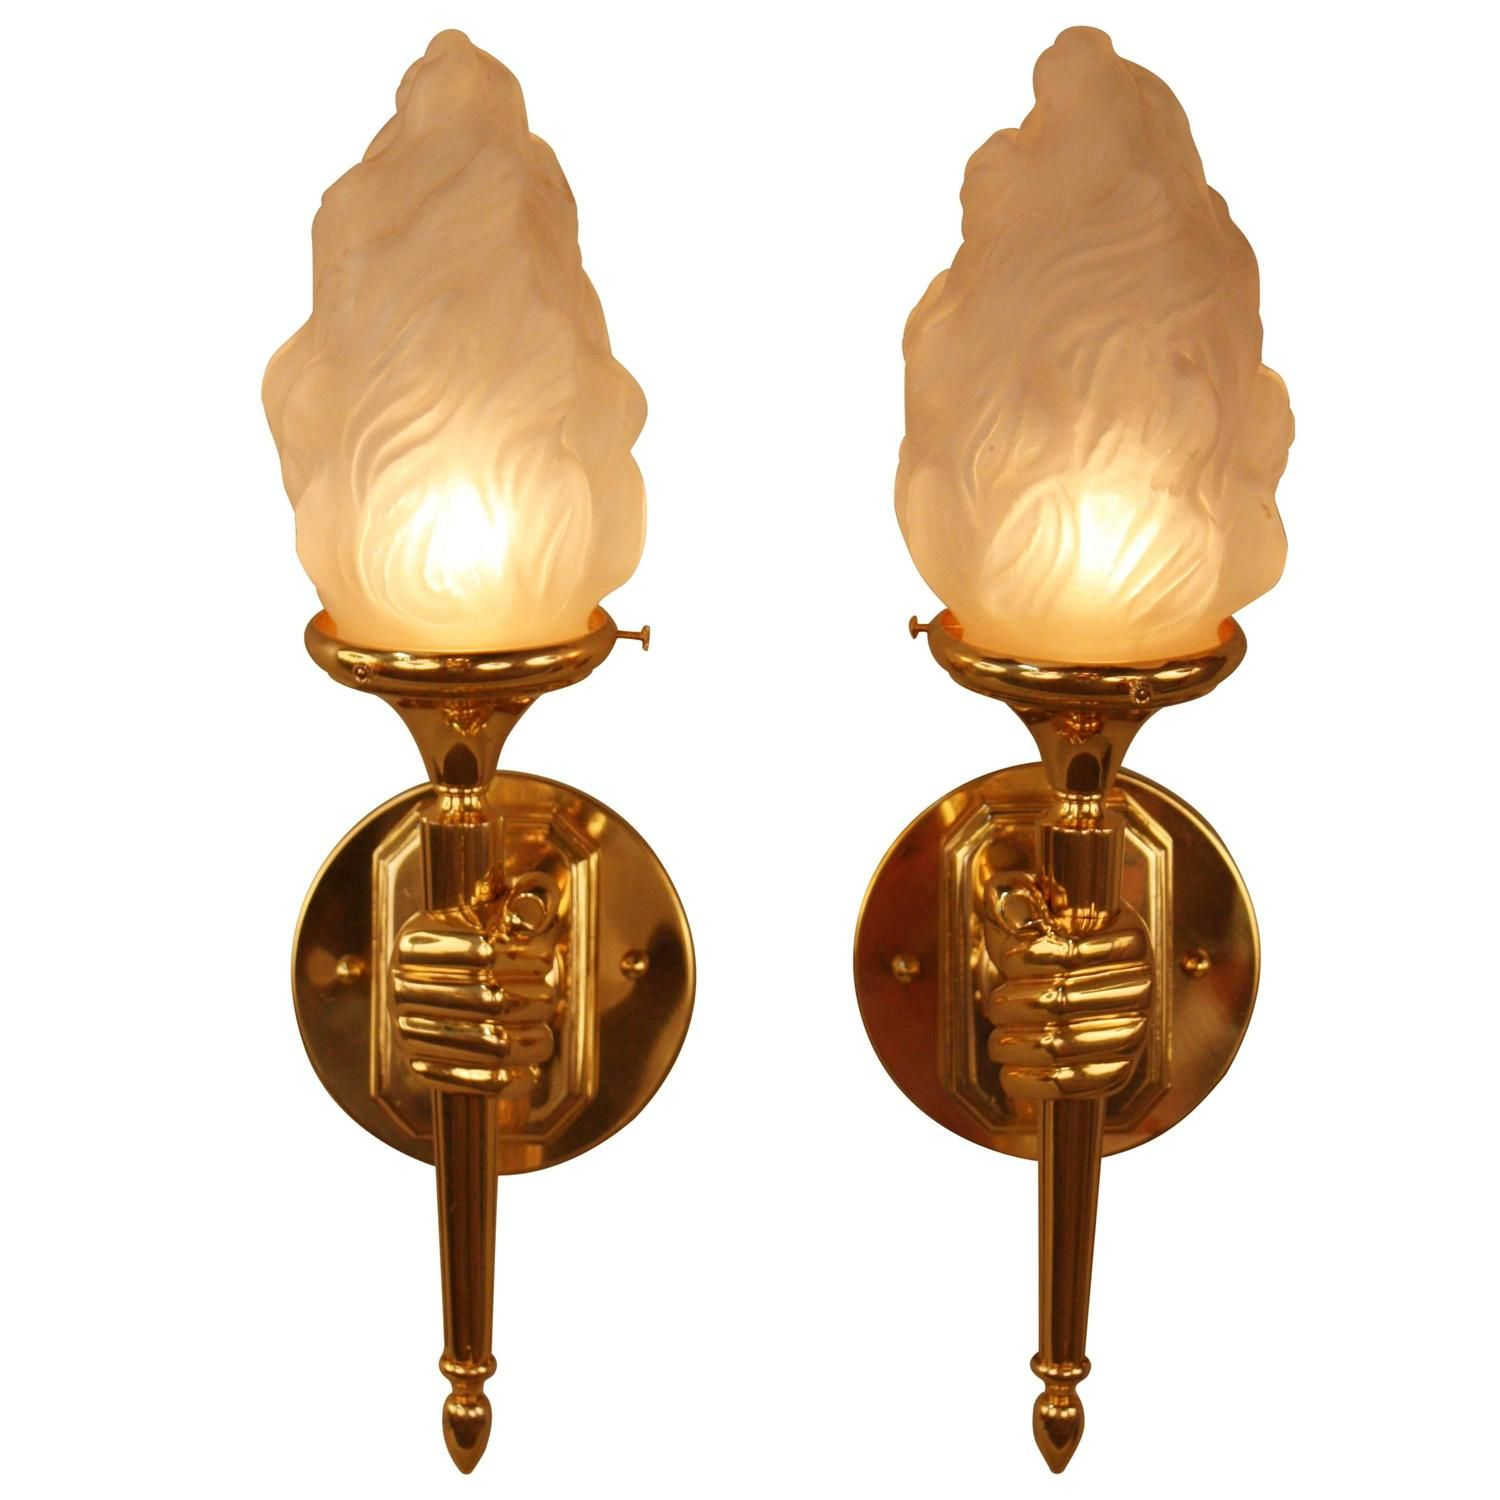 French Bronze Hand Hold Torch Wall Sconces 1stdibs Com Sconces